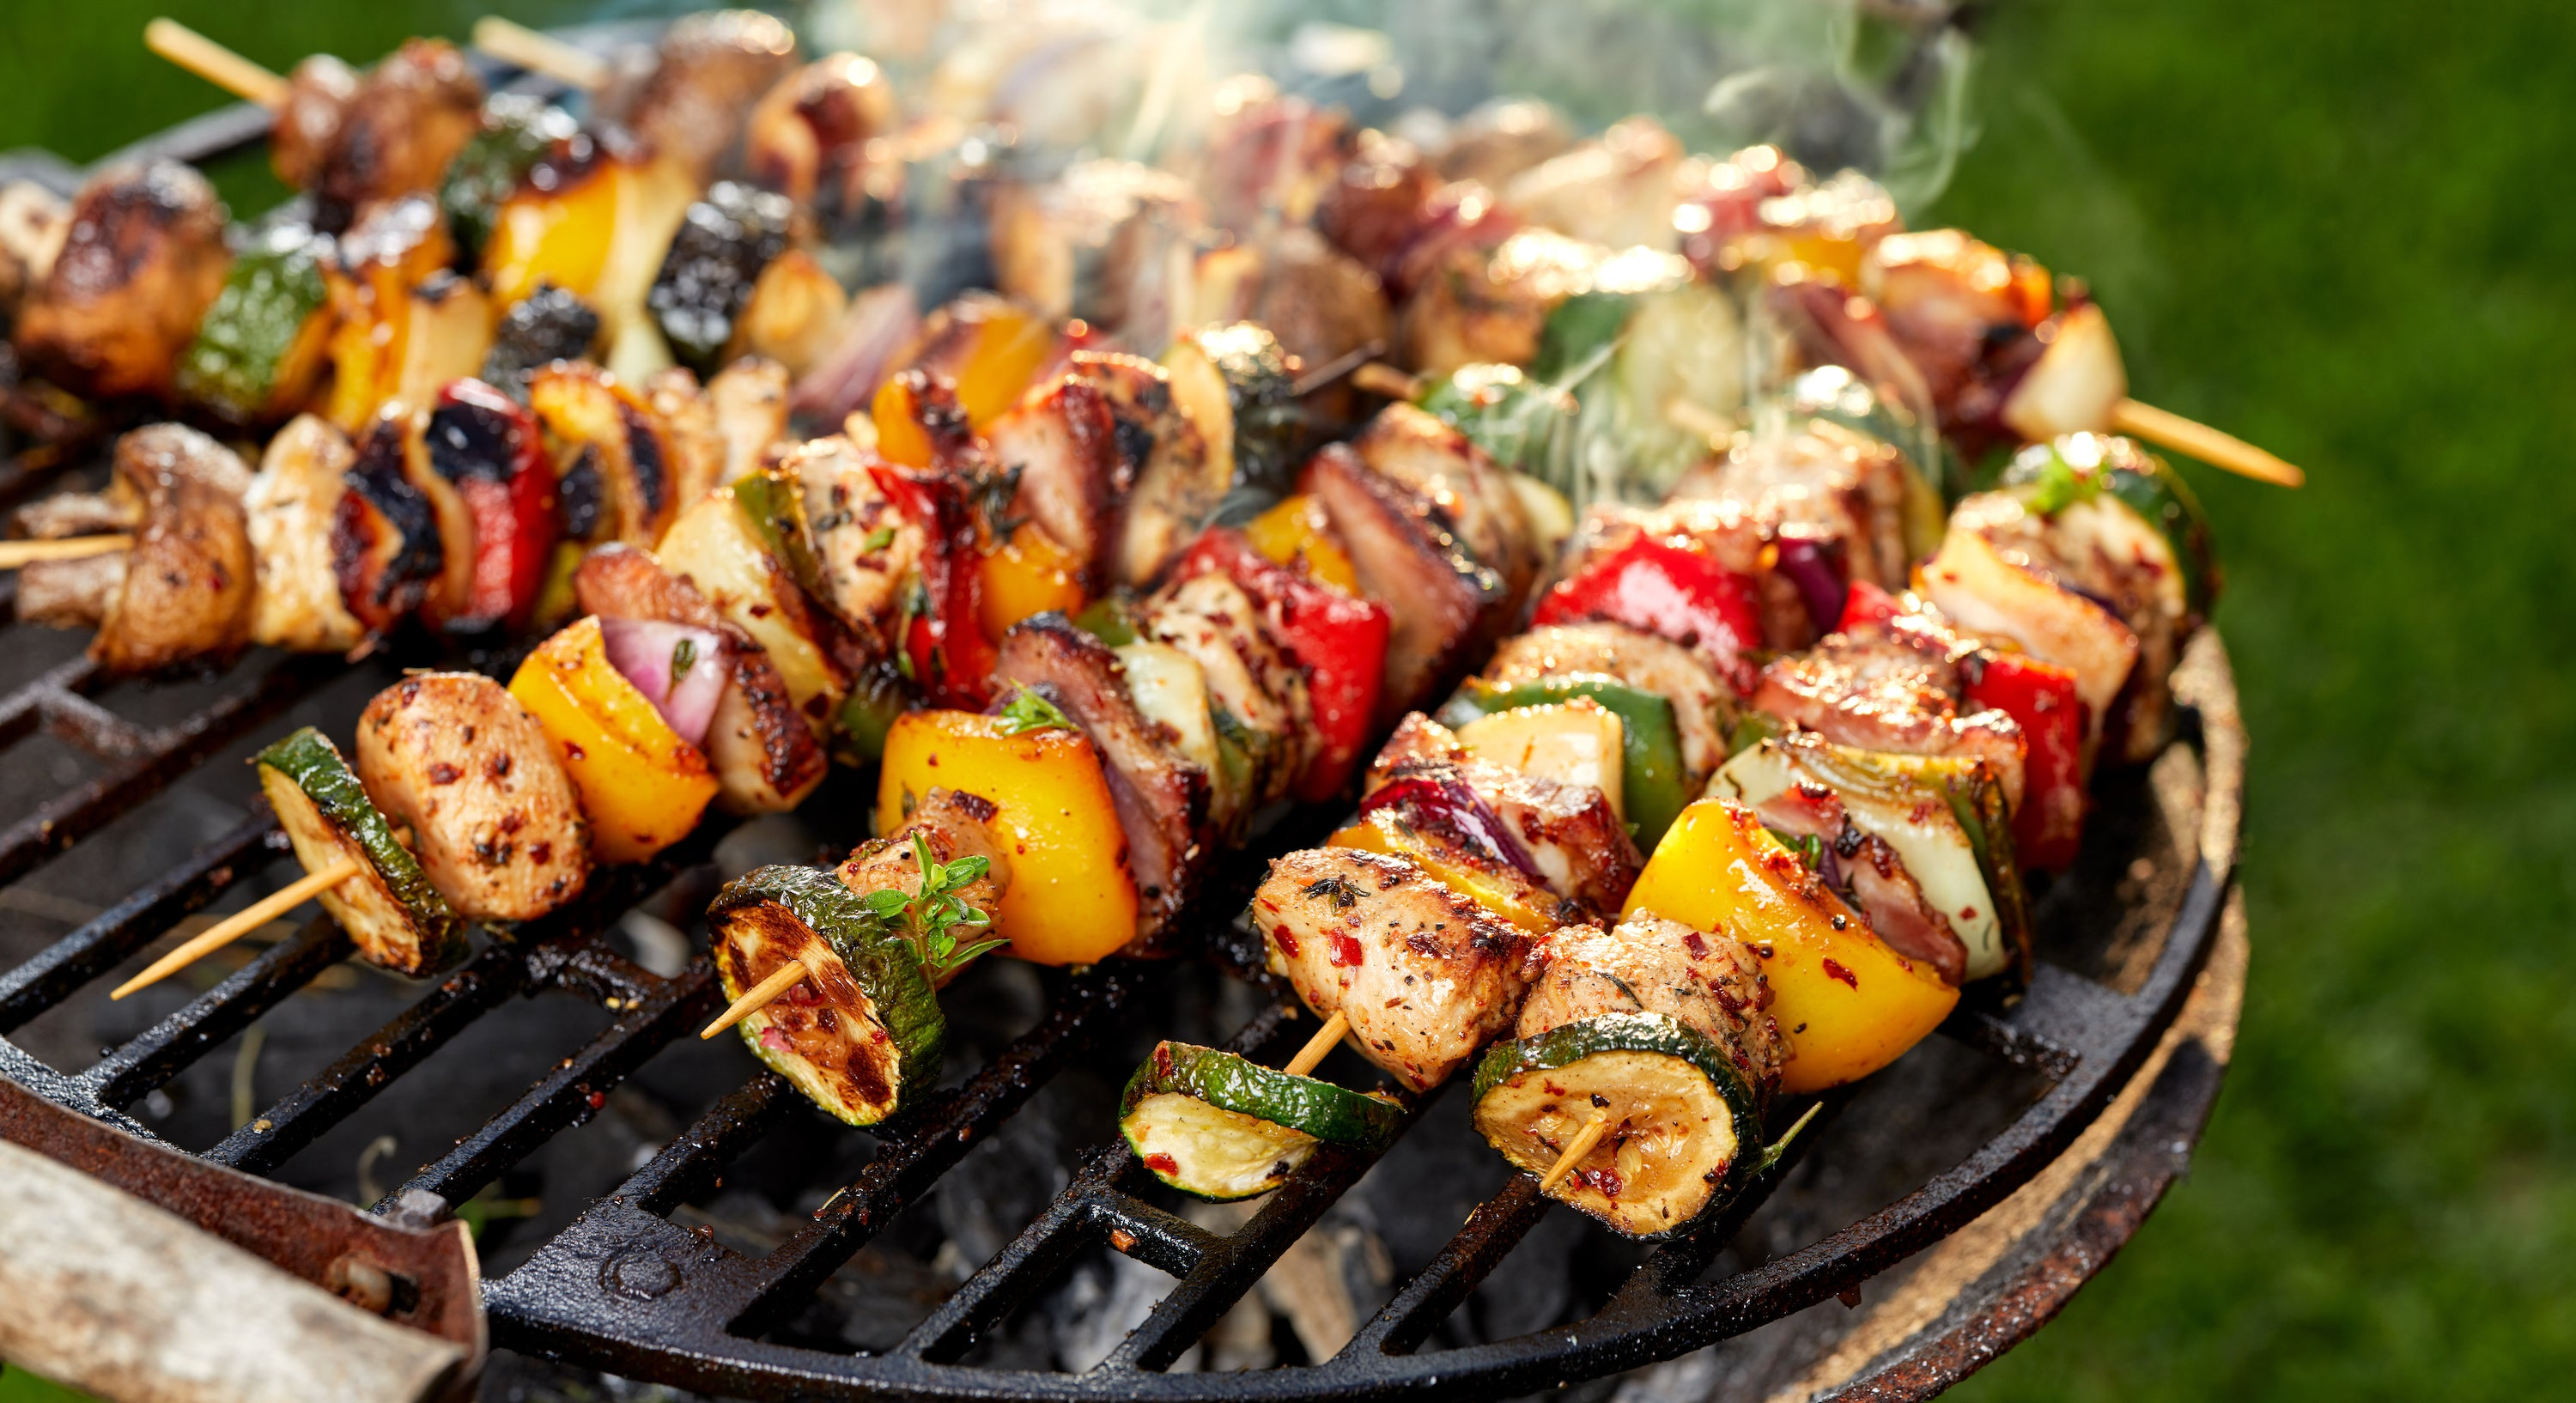 vegetables grilling on skewers with steam